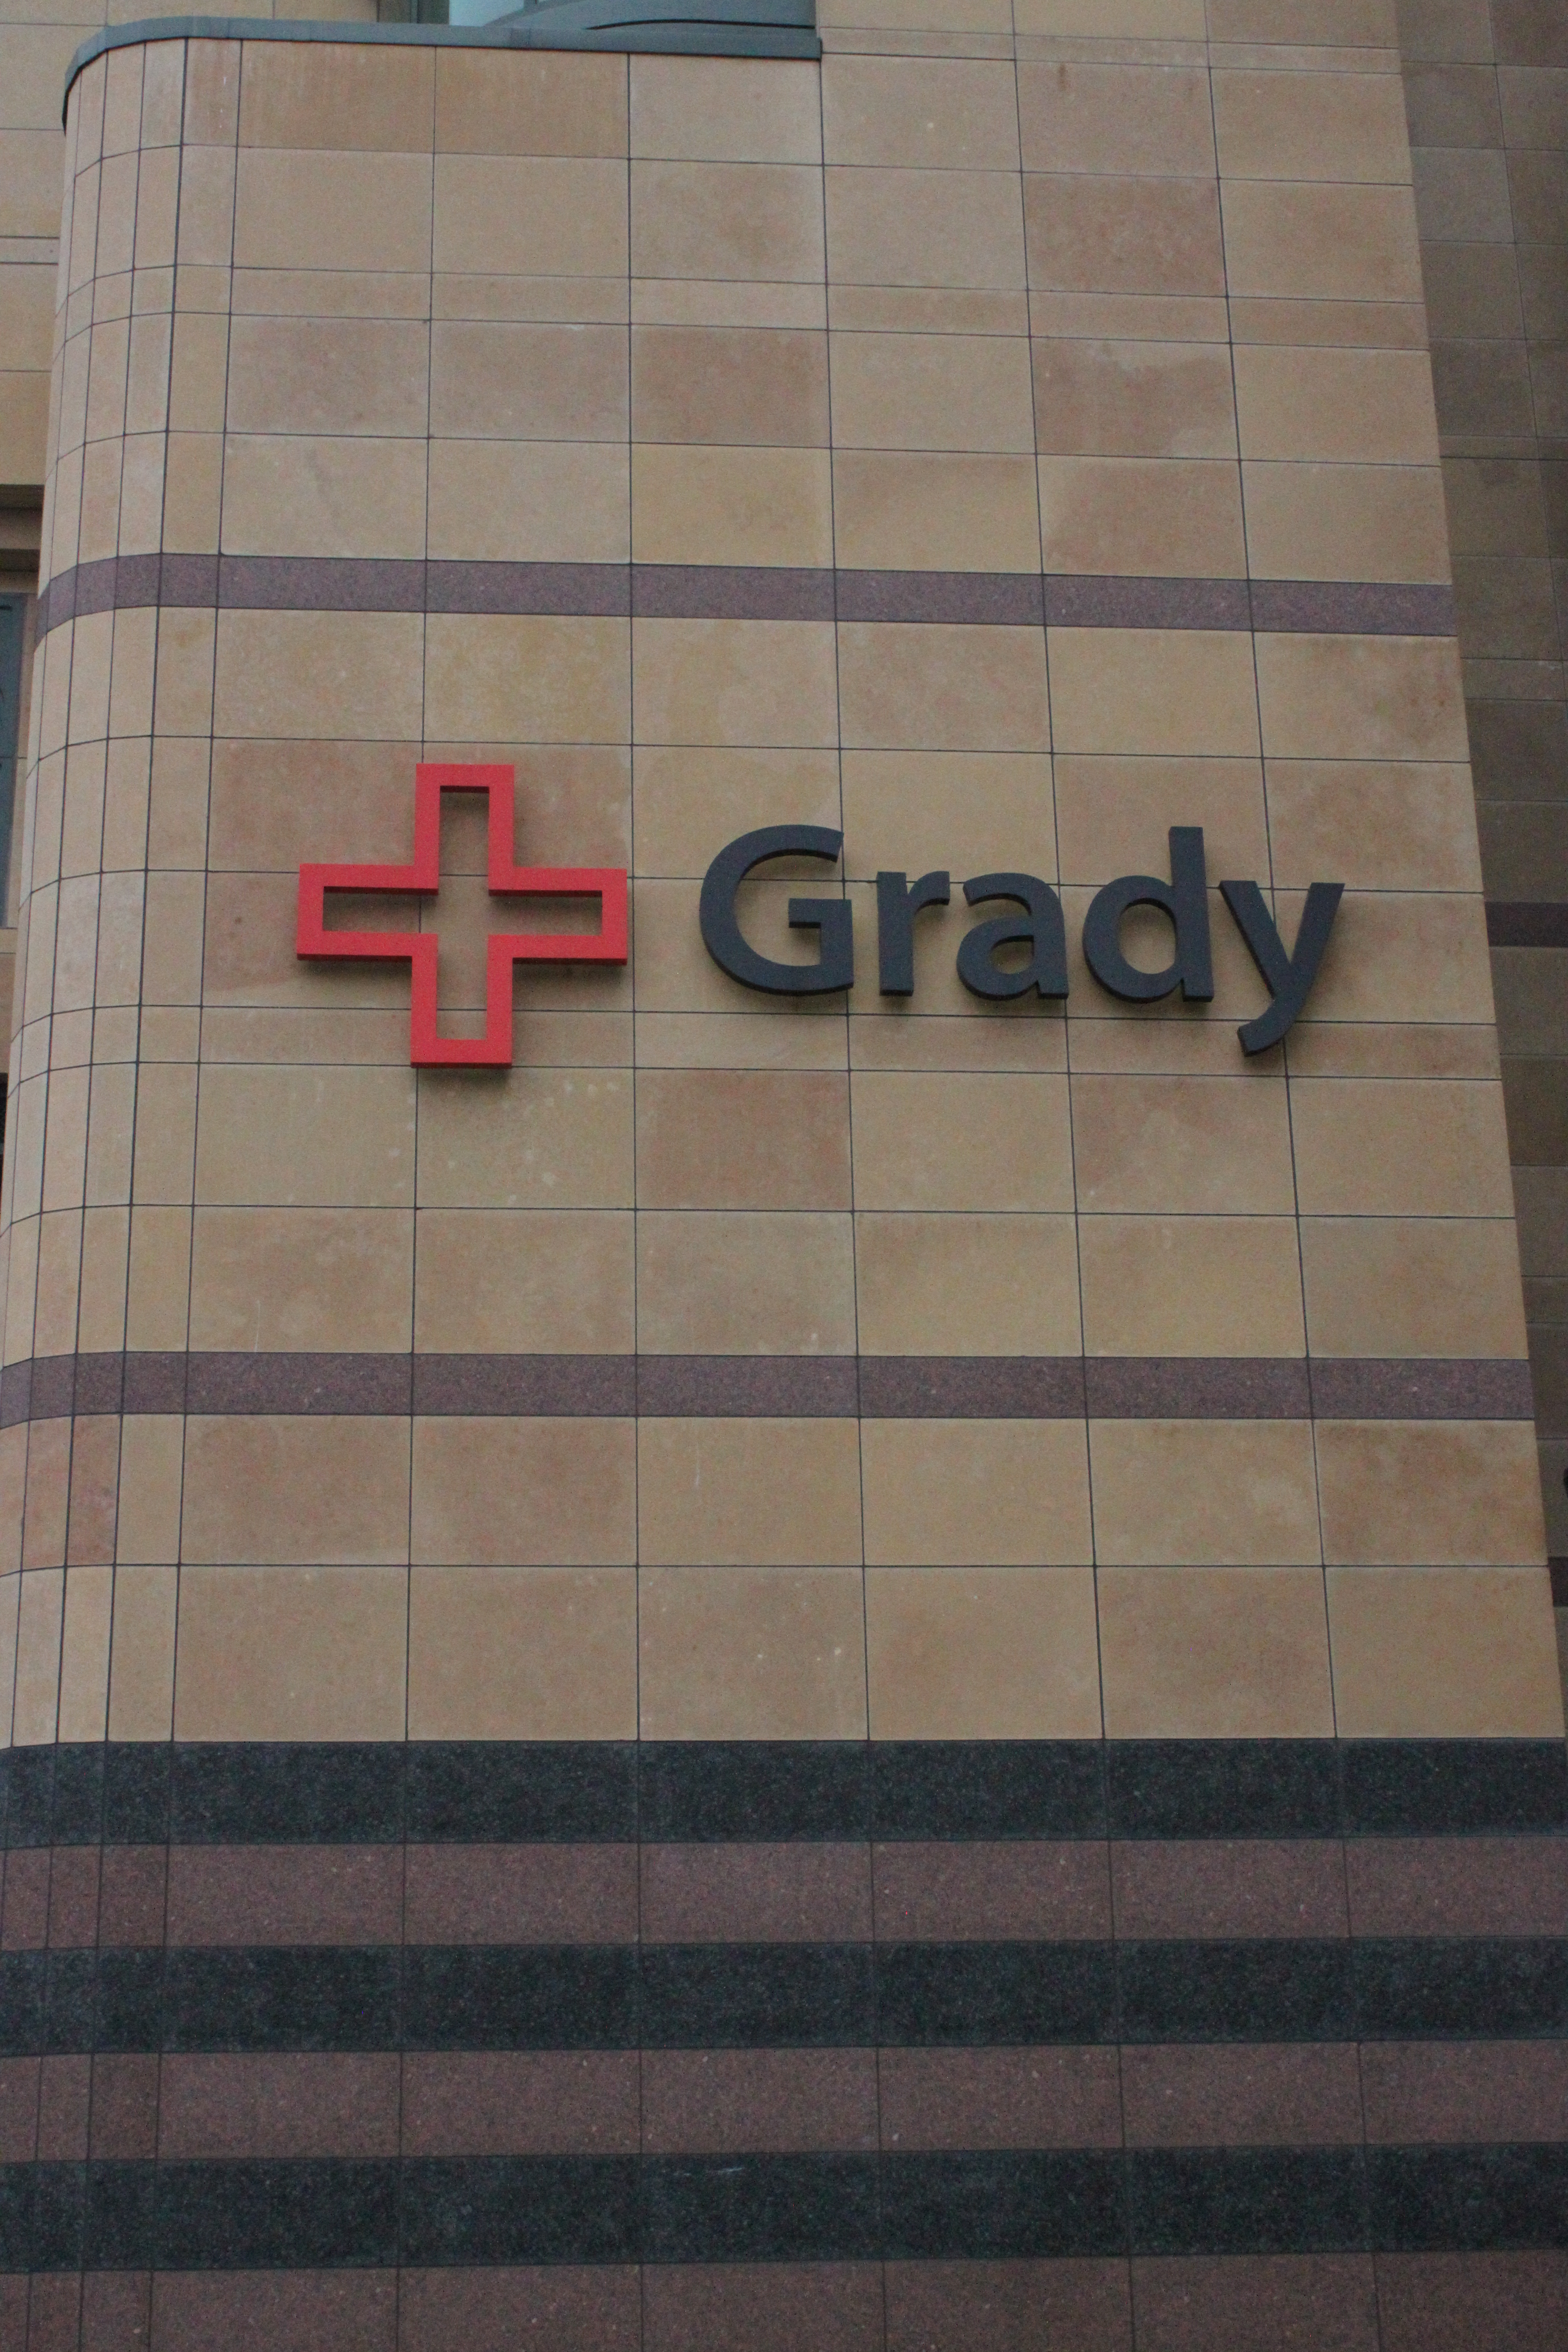 Grady memorial offering emt training for college students the signal grady memorial hospital bridges the gap between college students and medical professionals by providing specialized emt 1betcityfo Gallery